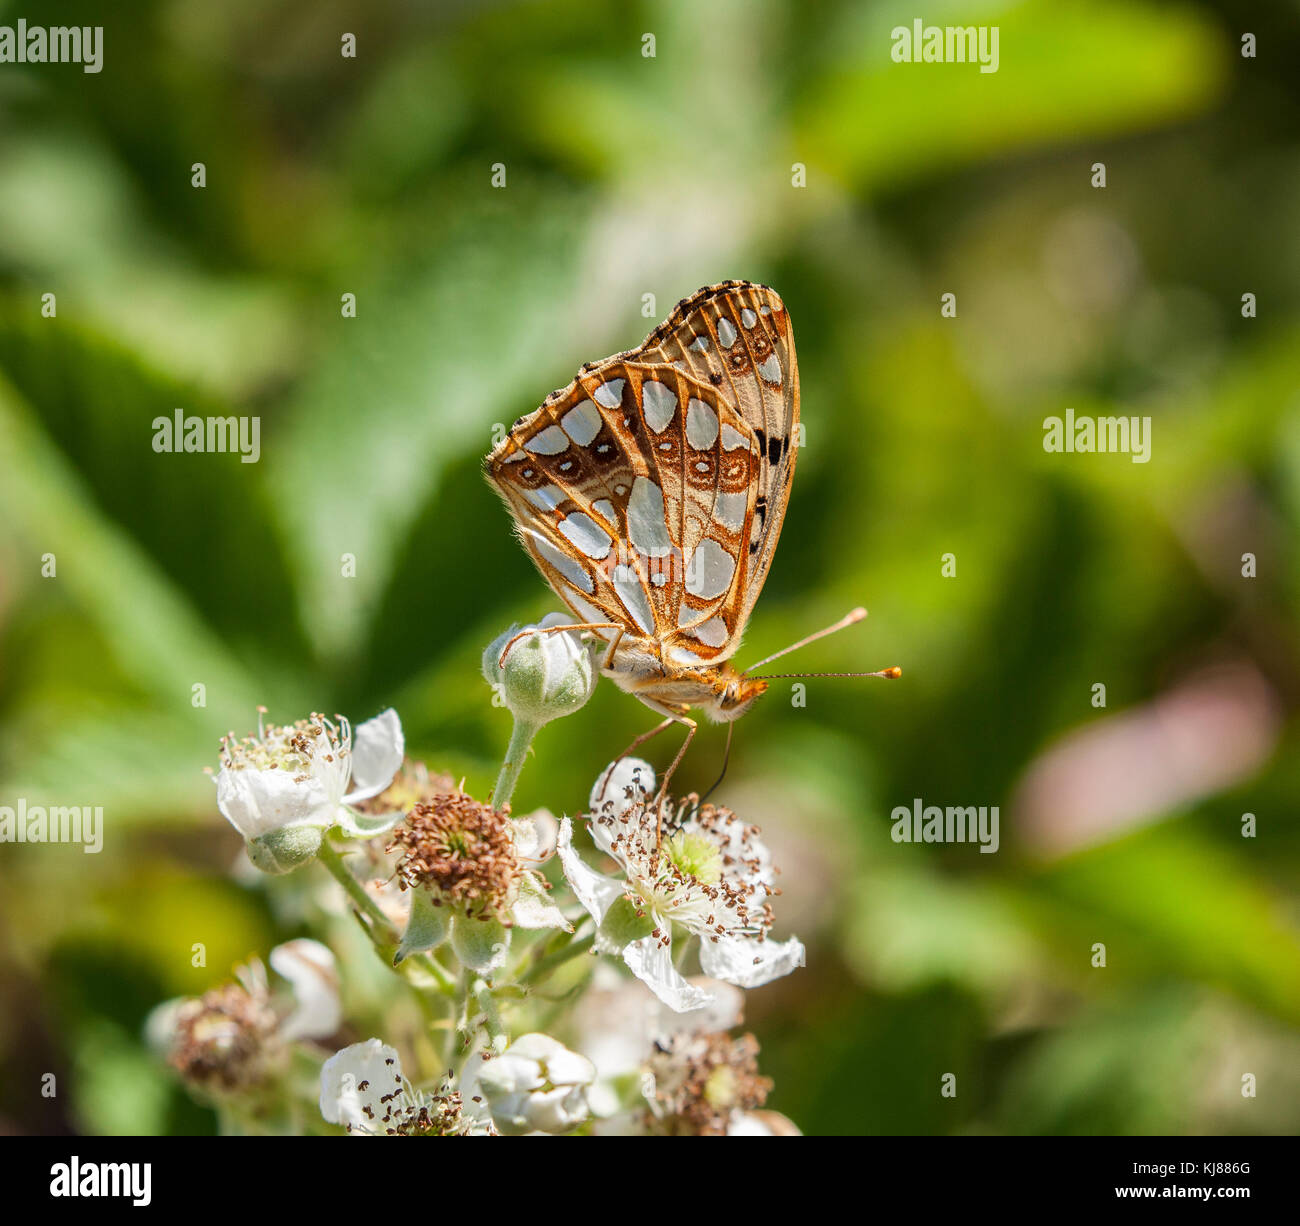 Queen of Spain Fritillary butterfly issoria lathonia basking in the sunshine at Riaza in central Spain showing its - Stock Image